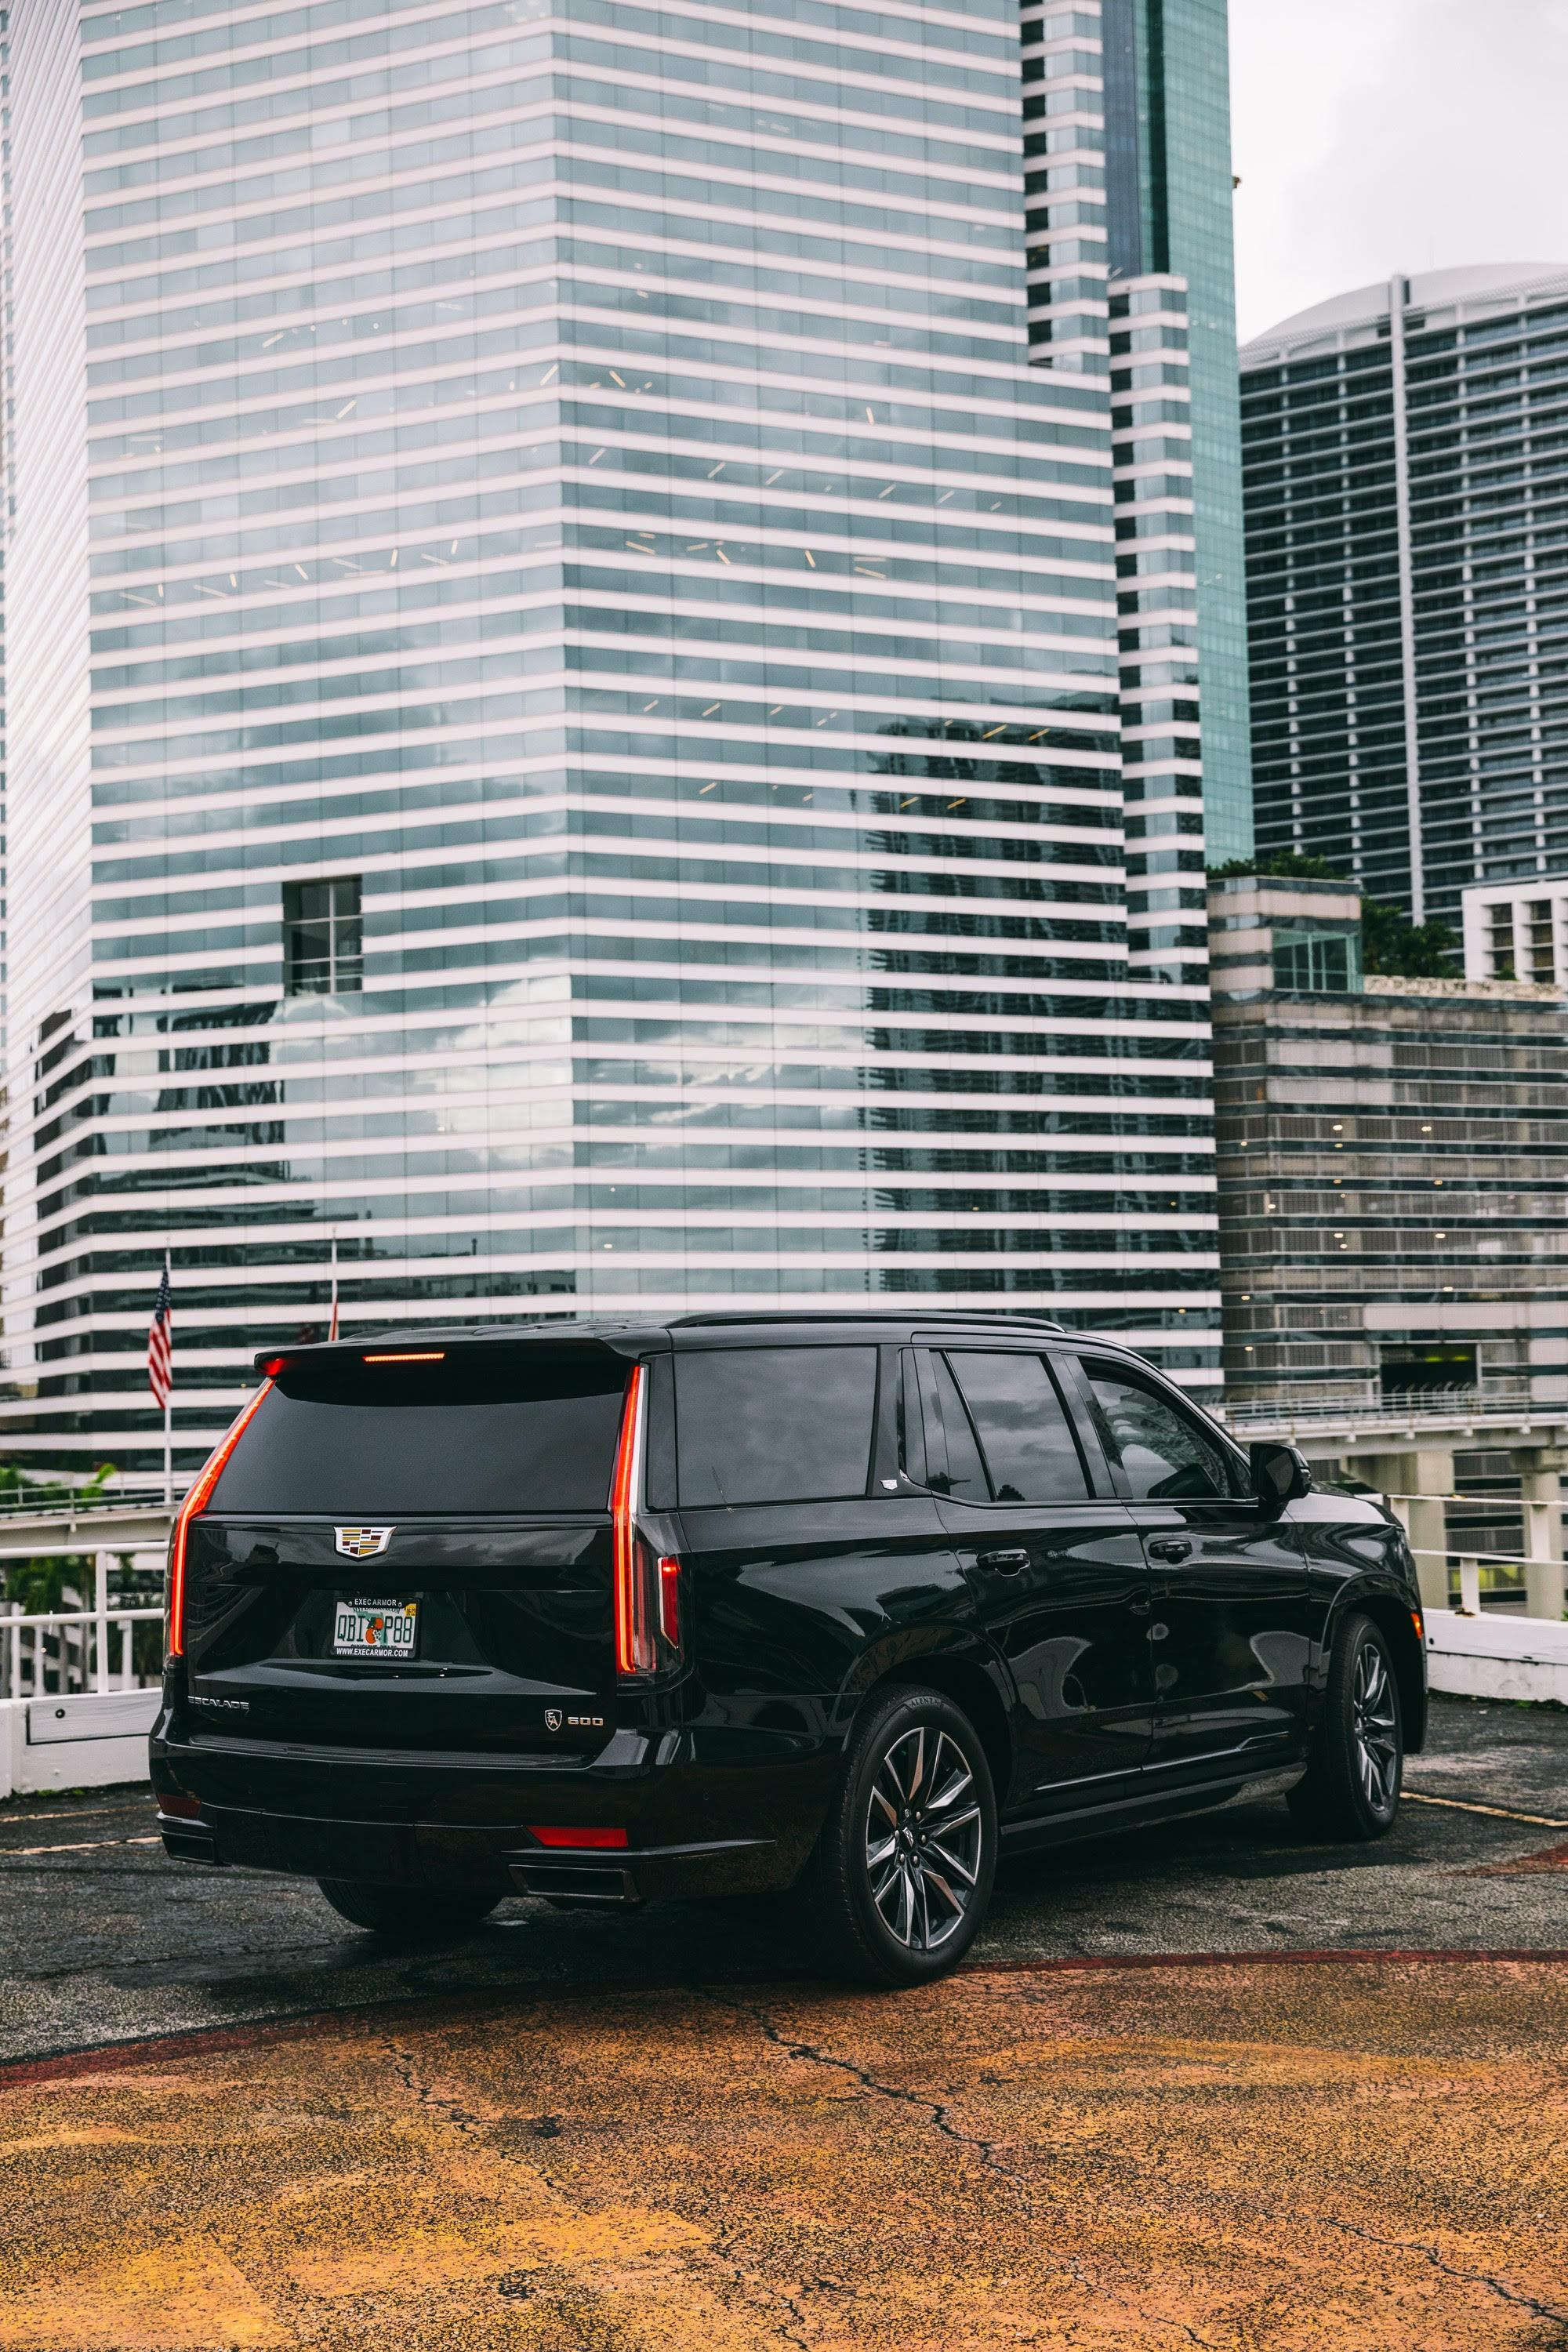 Image #4 of our  Armored Cadillac Escalade    In Miami Fort Lauderdale Palm Beach South Florida